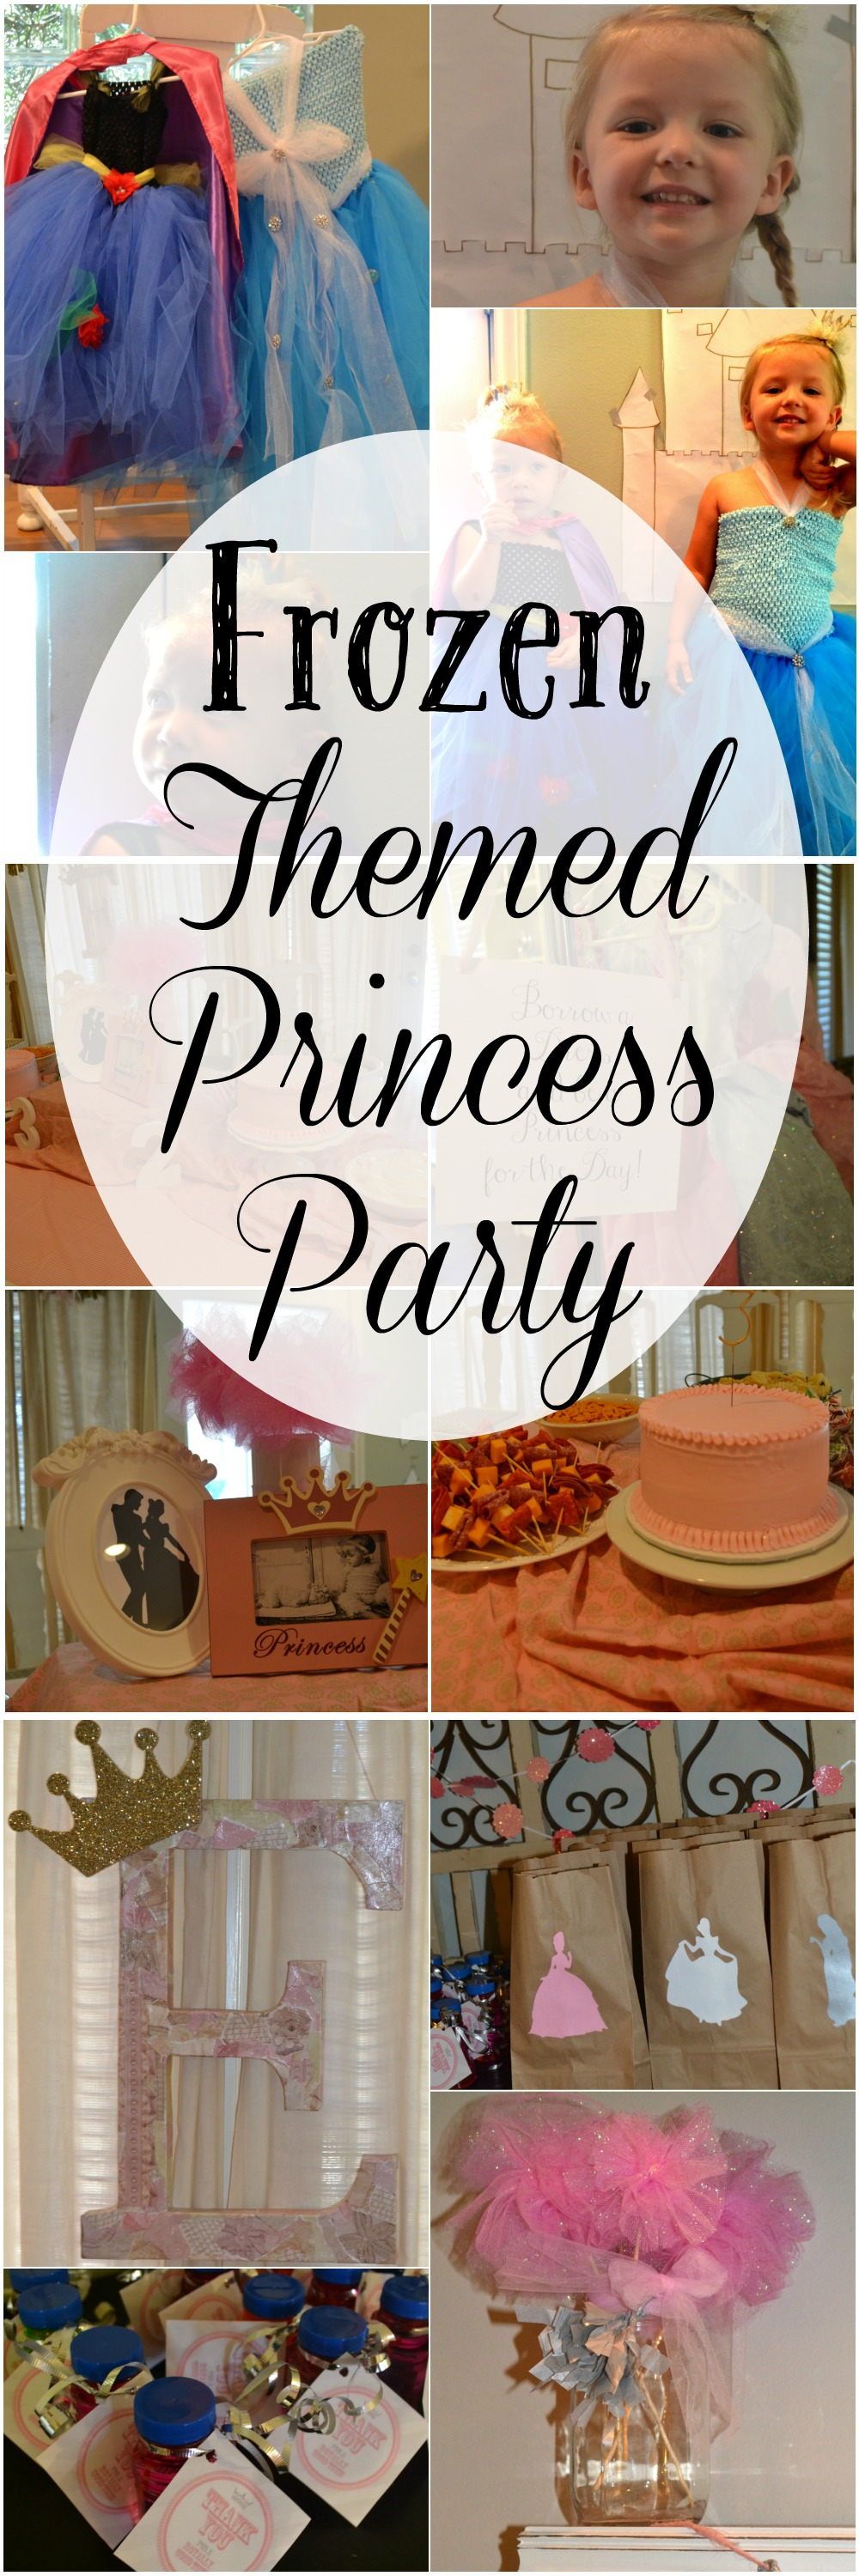 This Frozen Themed Birthday party is full of all things Anna, Elsa, Olaf and more Princess Party Fun. Great tips and ideas for the perfect Frozen Birthday party!